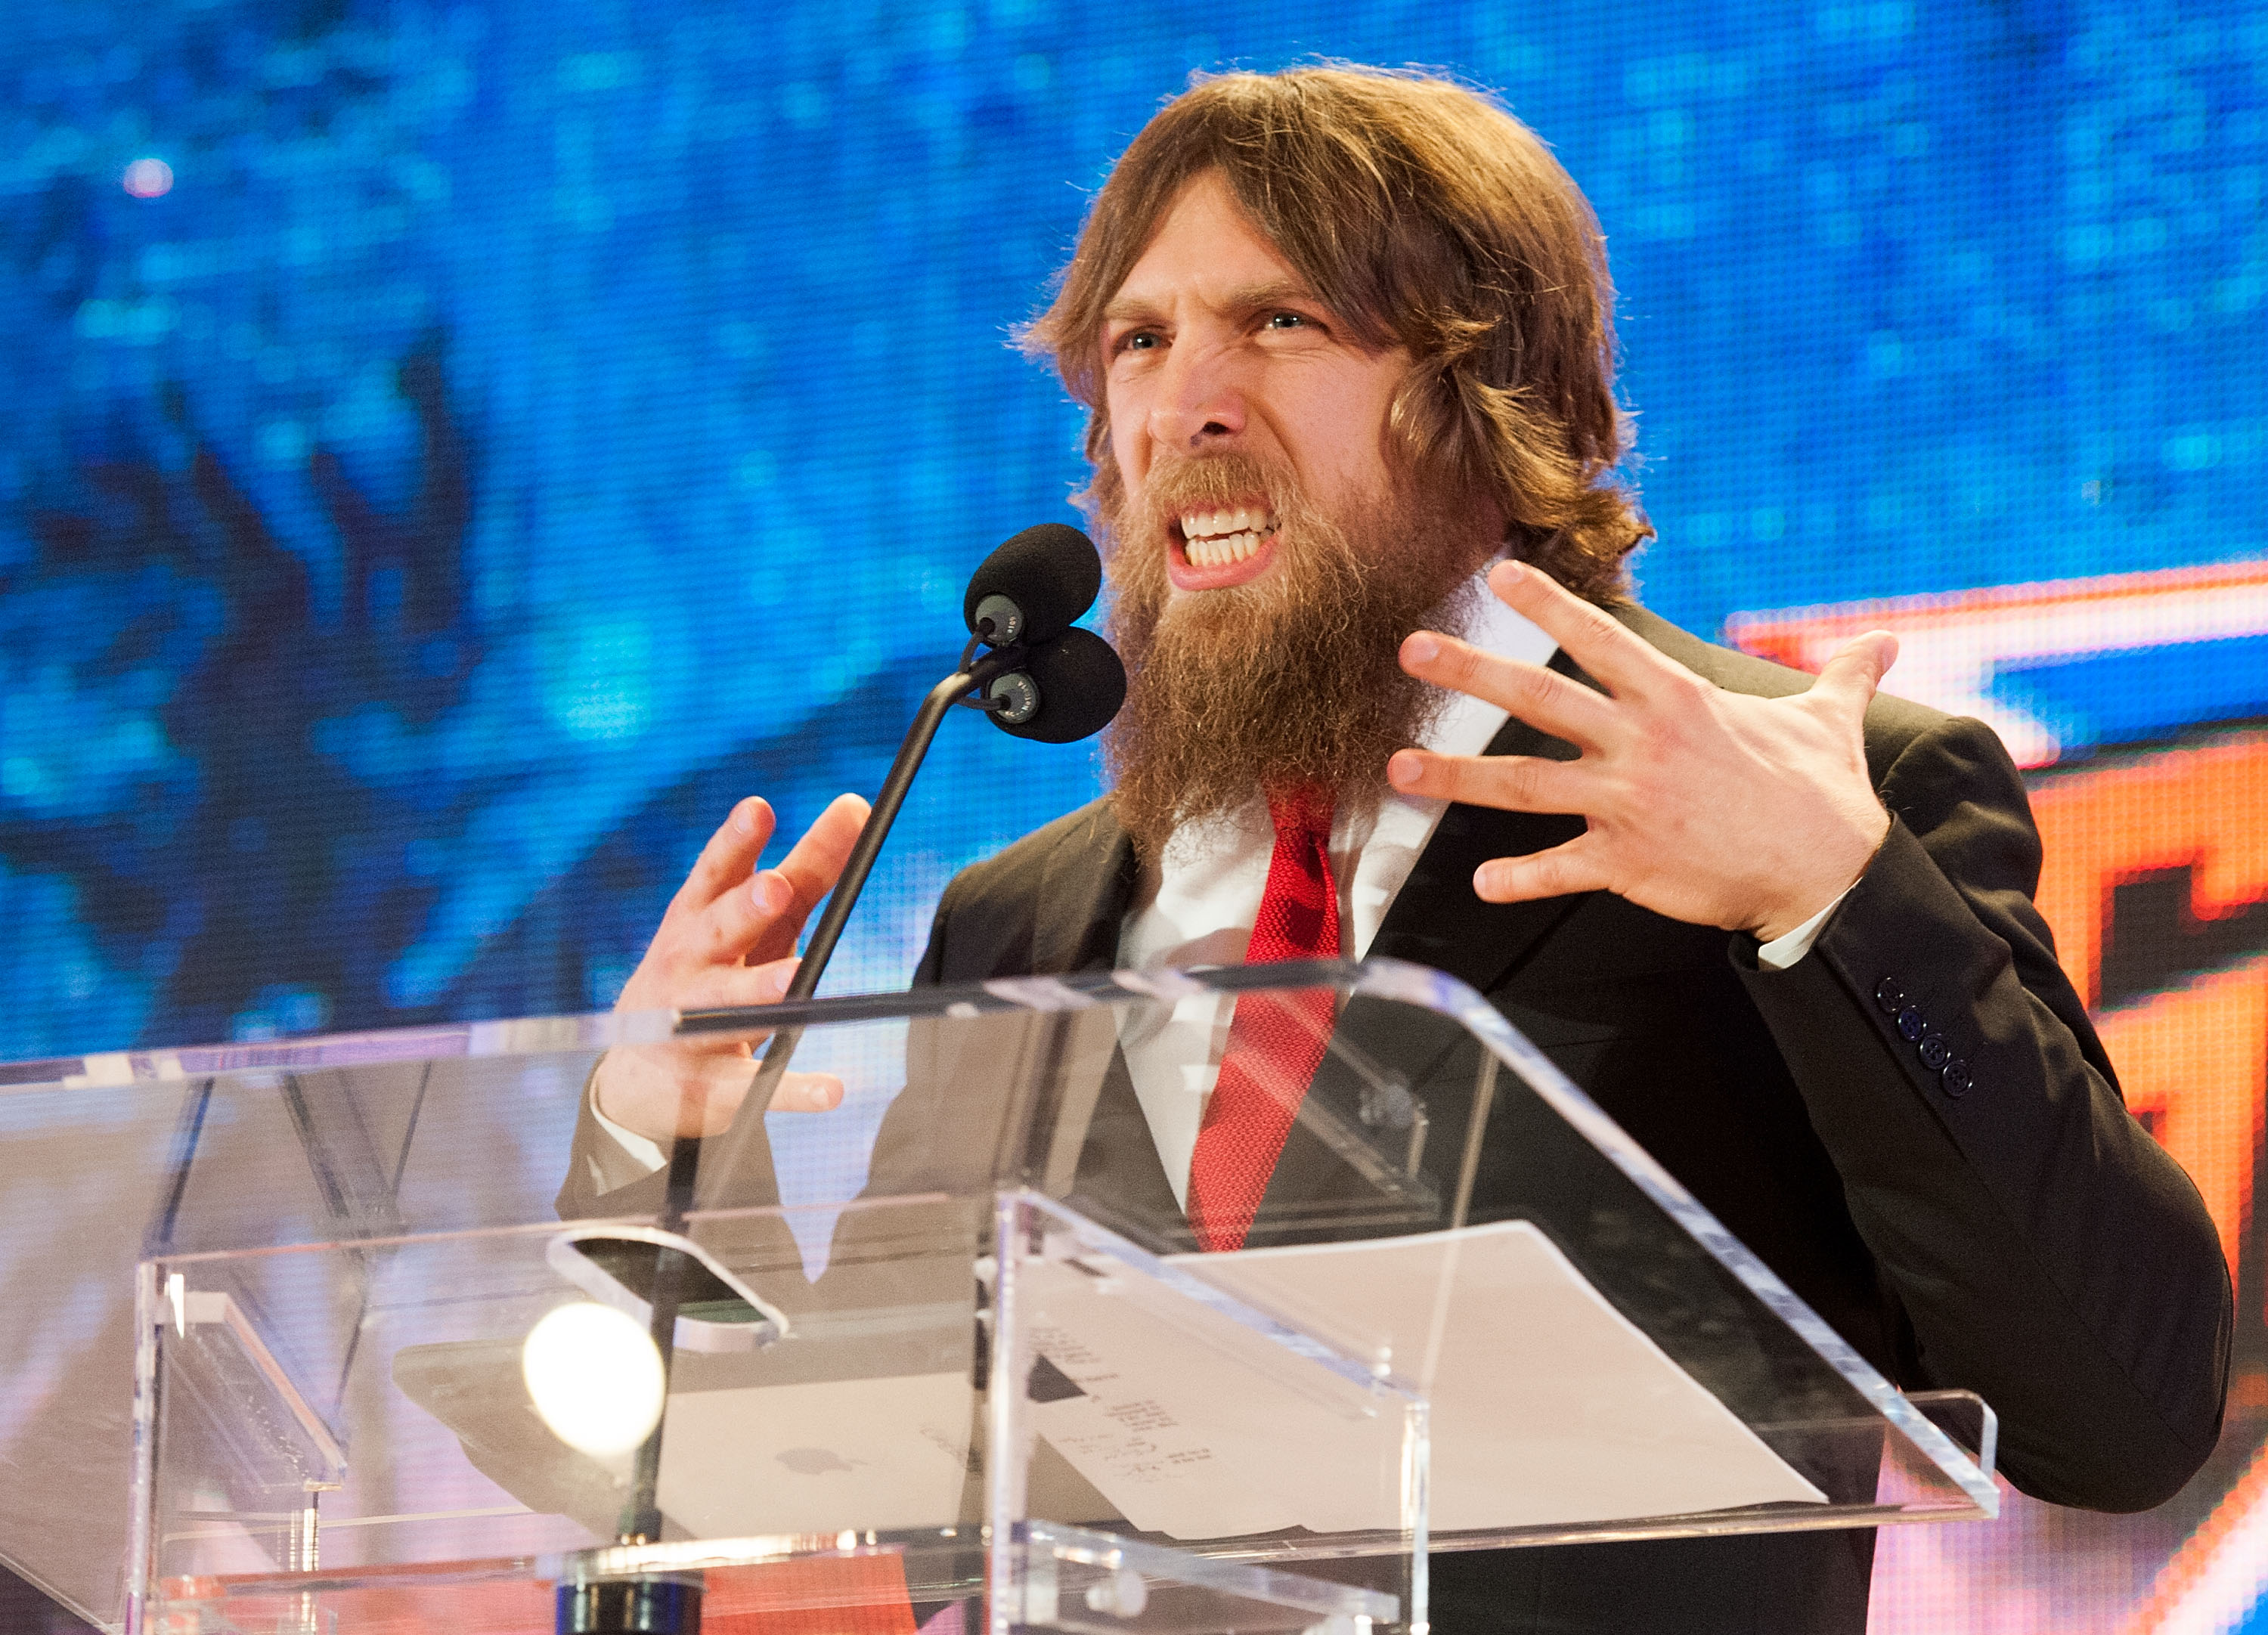 Have WWE fans been unfairly kept in the dark about the true chances of Daniel Bryan wrestling tonight?